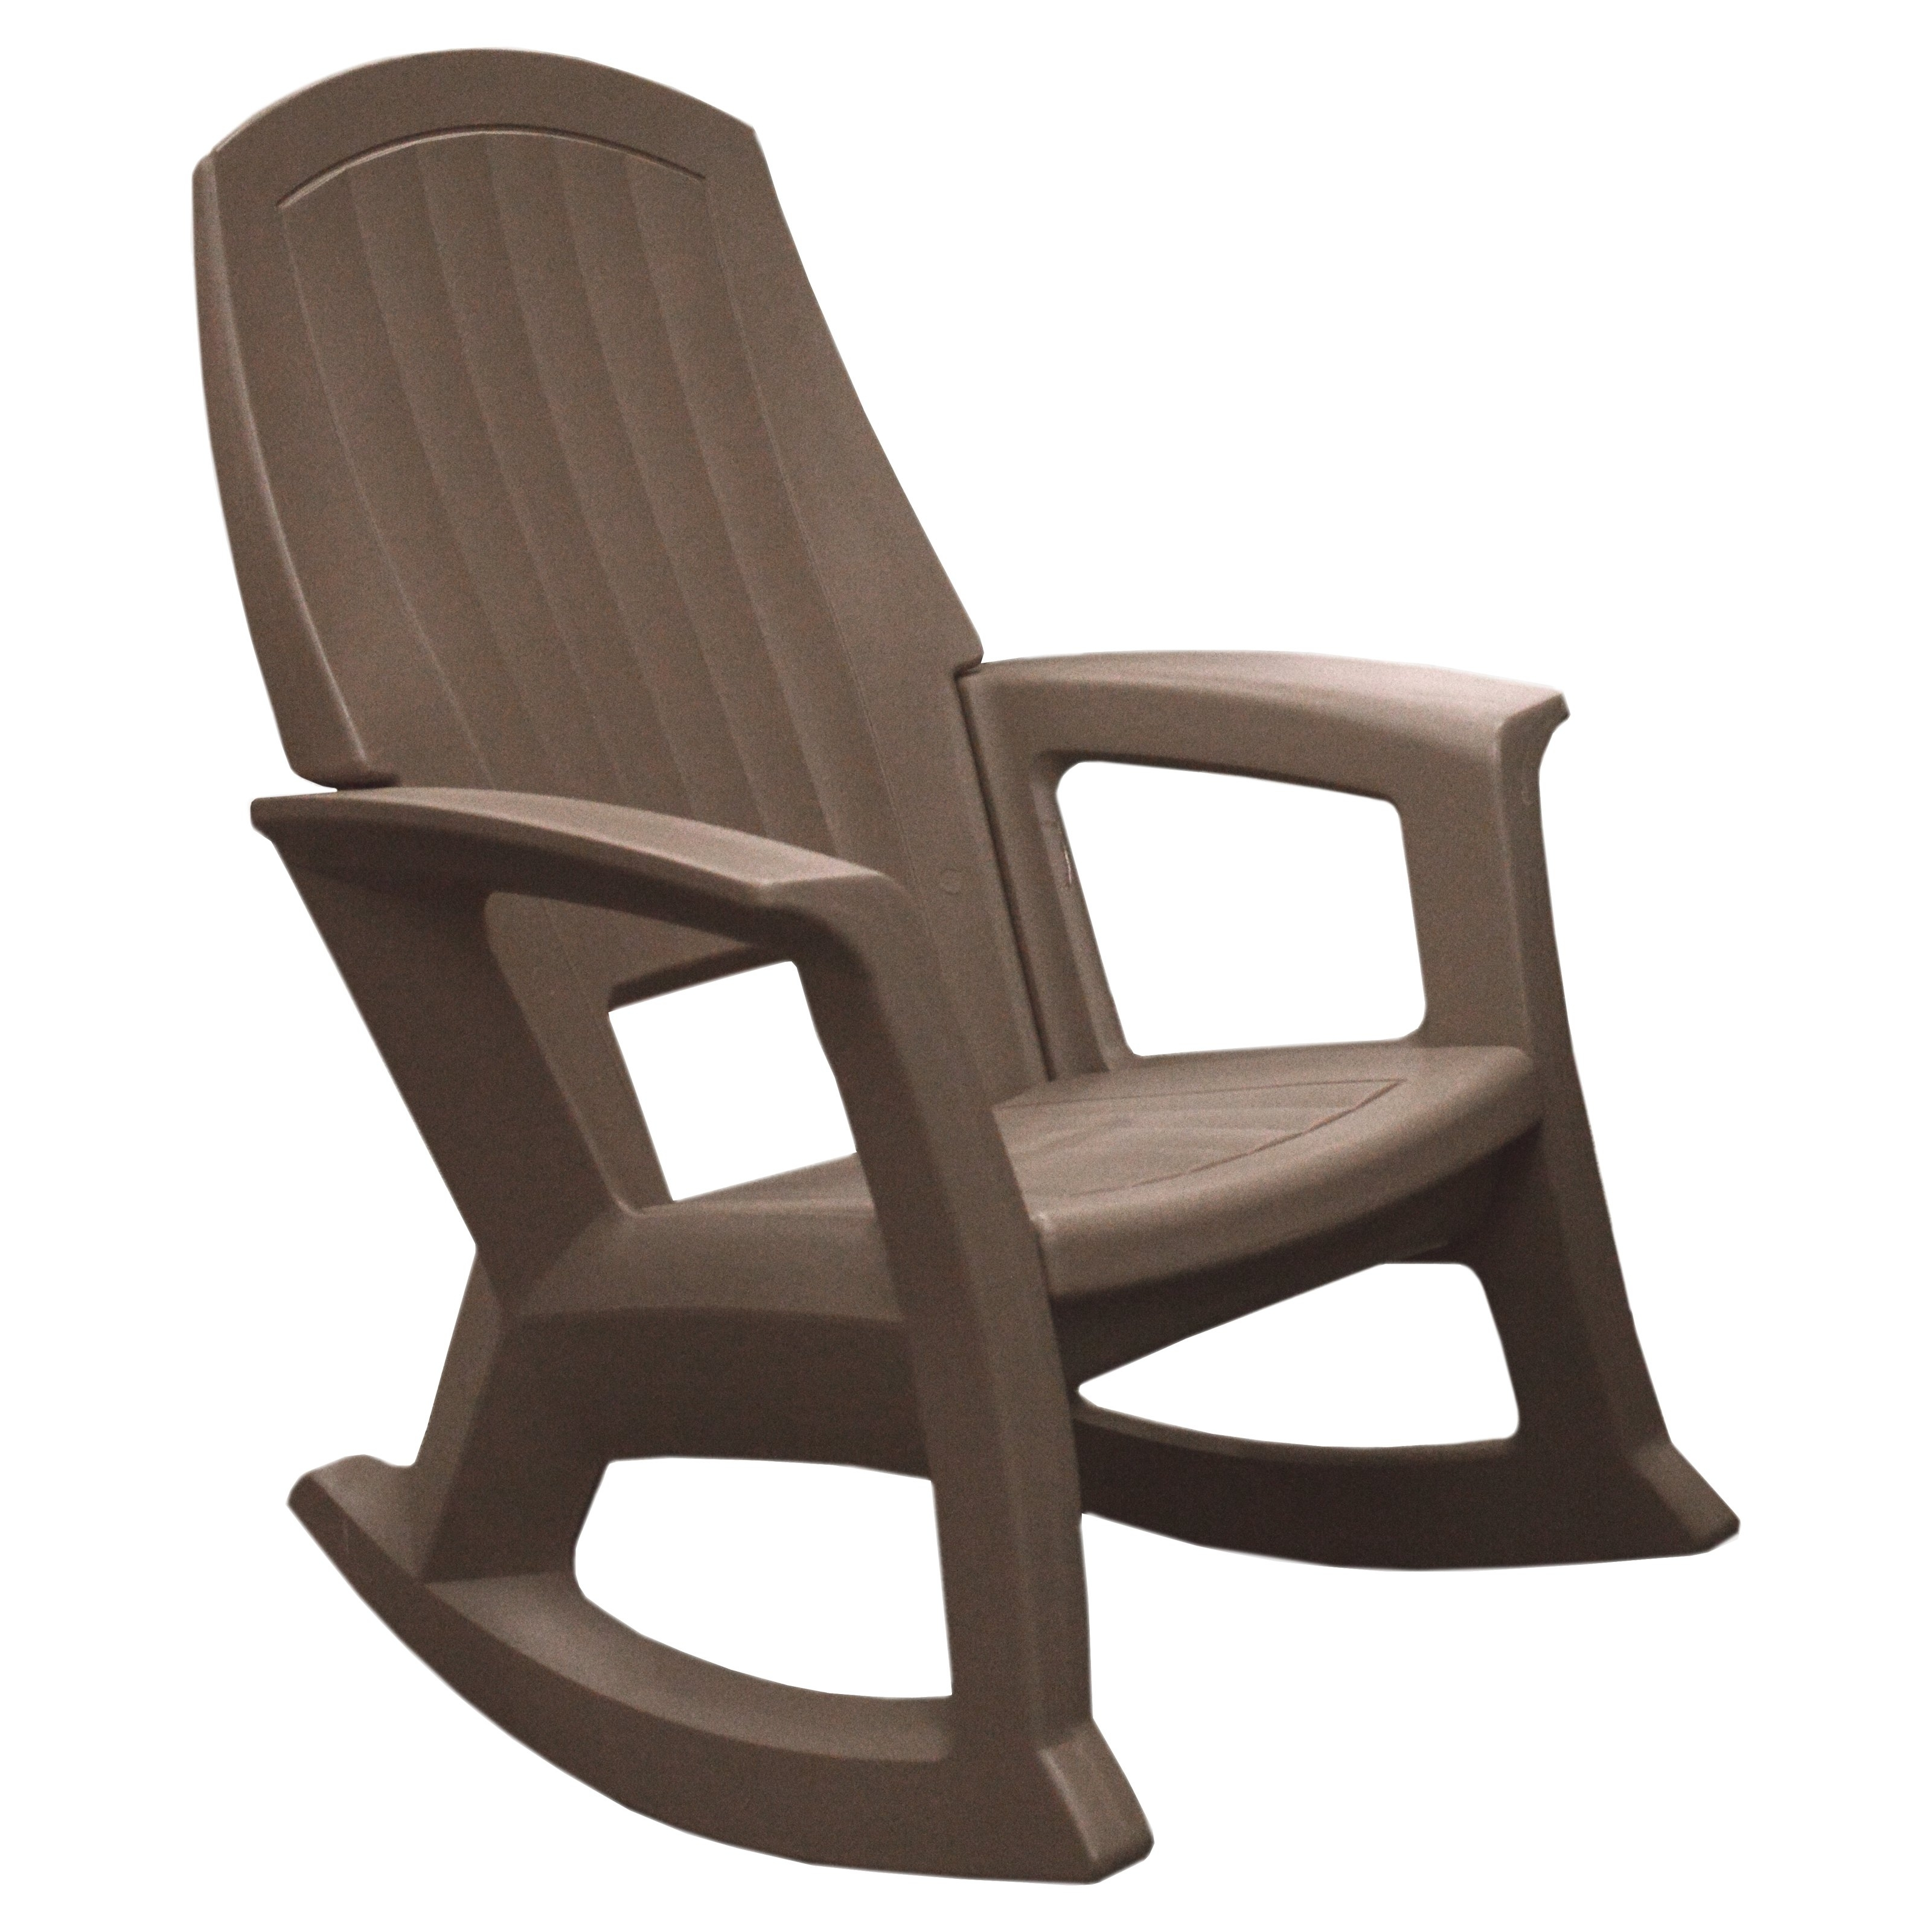 Well Liked White Resin Patio Rocking Chairs Throughout Semco Outdoor Patio Resin Rocking Chair – Outdoor Designs (View 15 of 20)